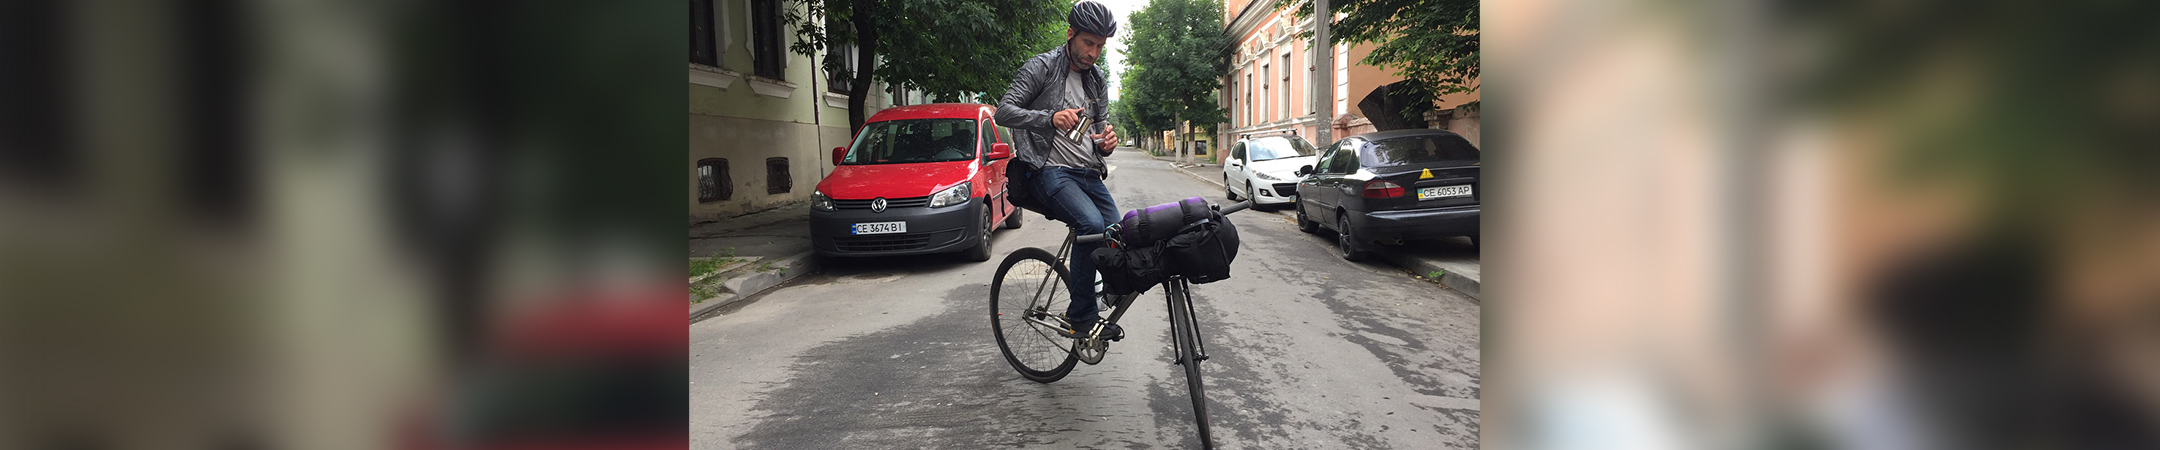 Cycling interview   KeirinBerlin